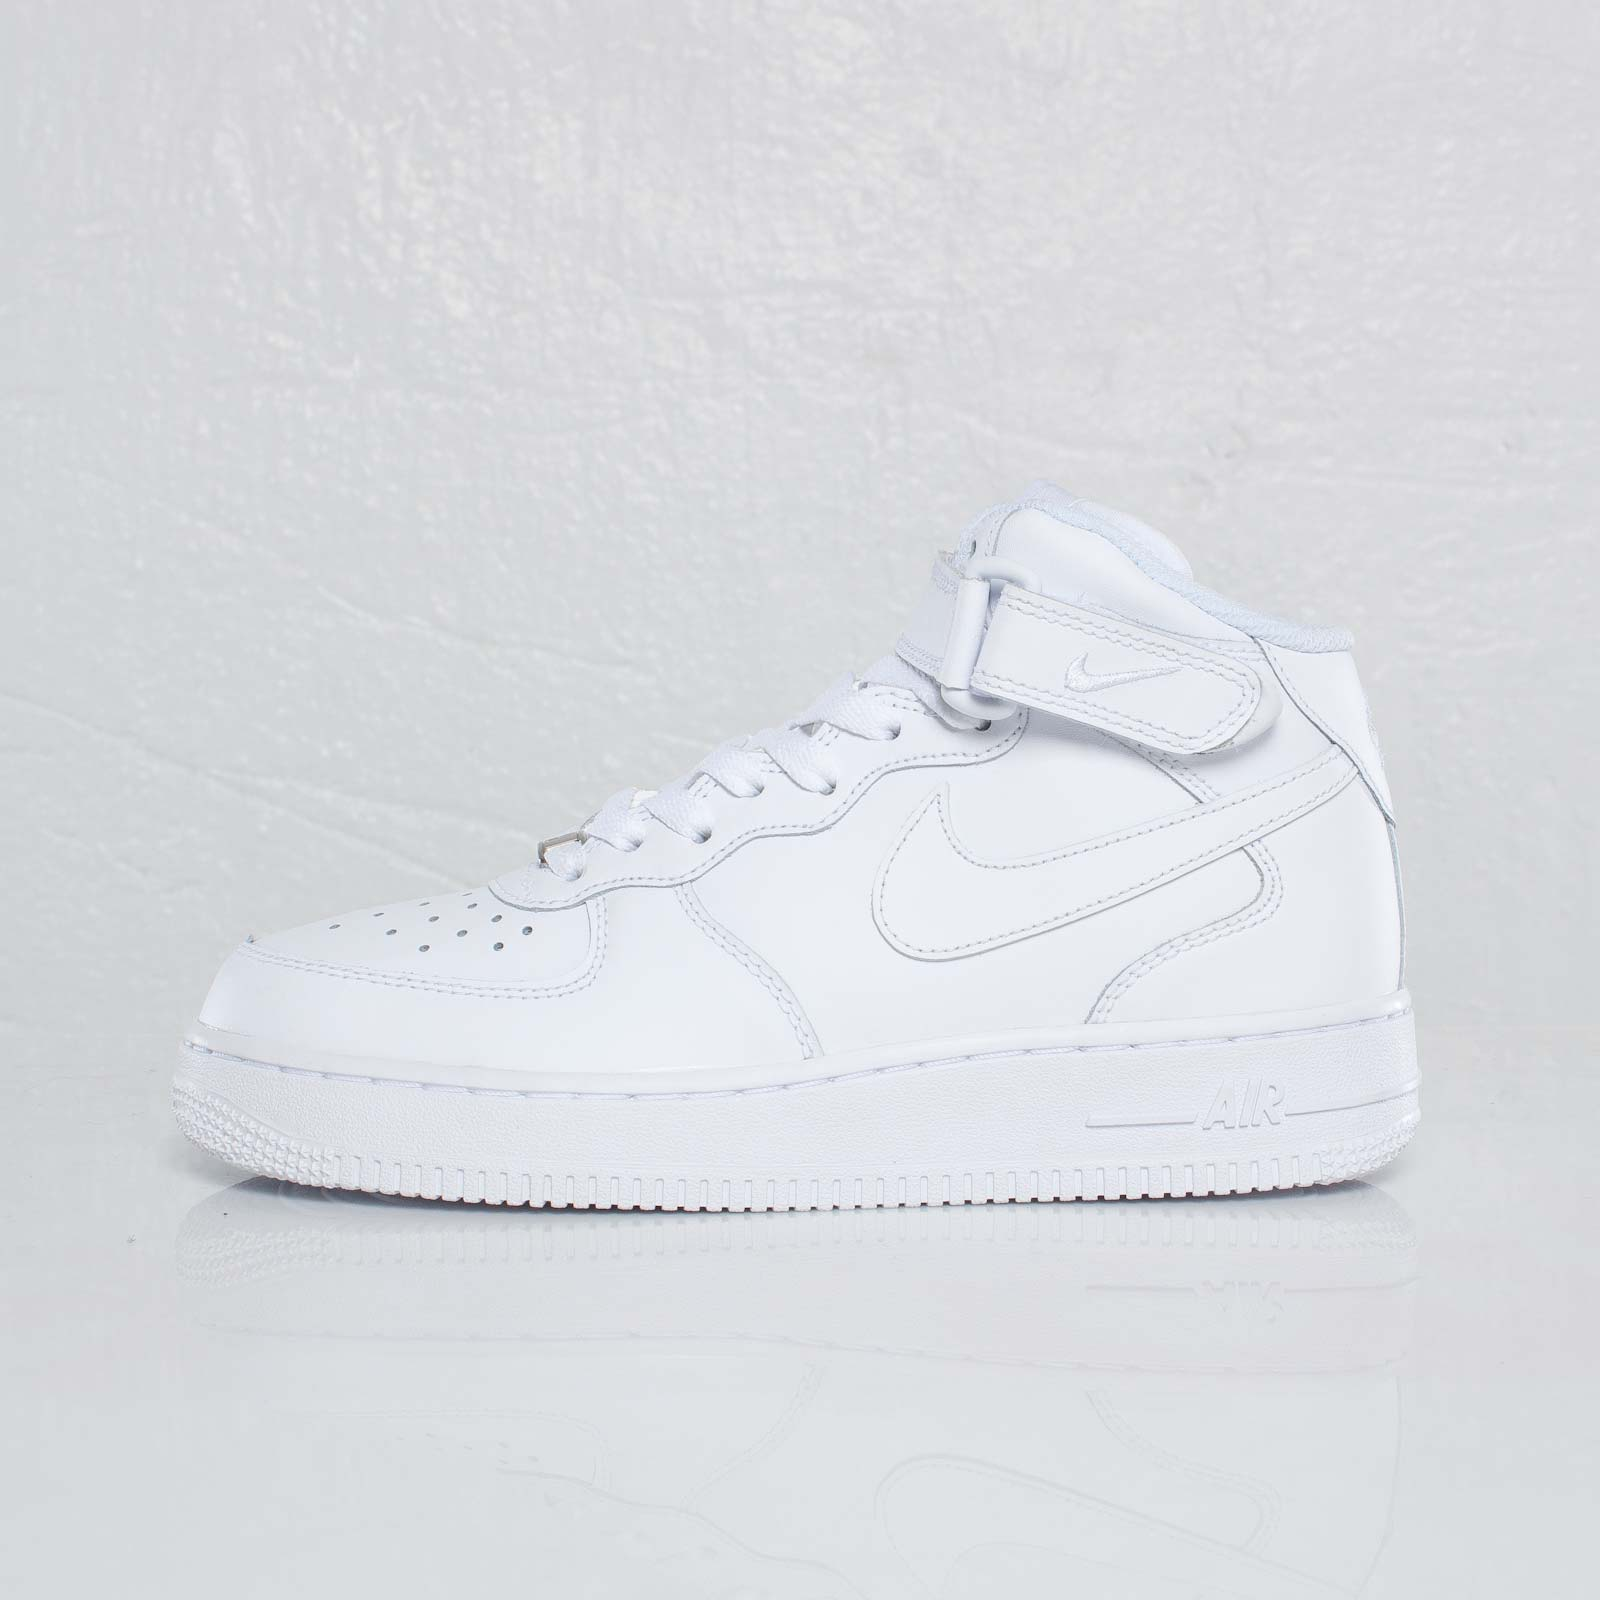 nike air force dam storlek